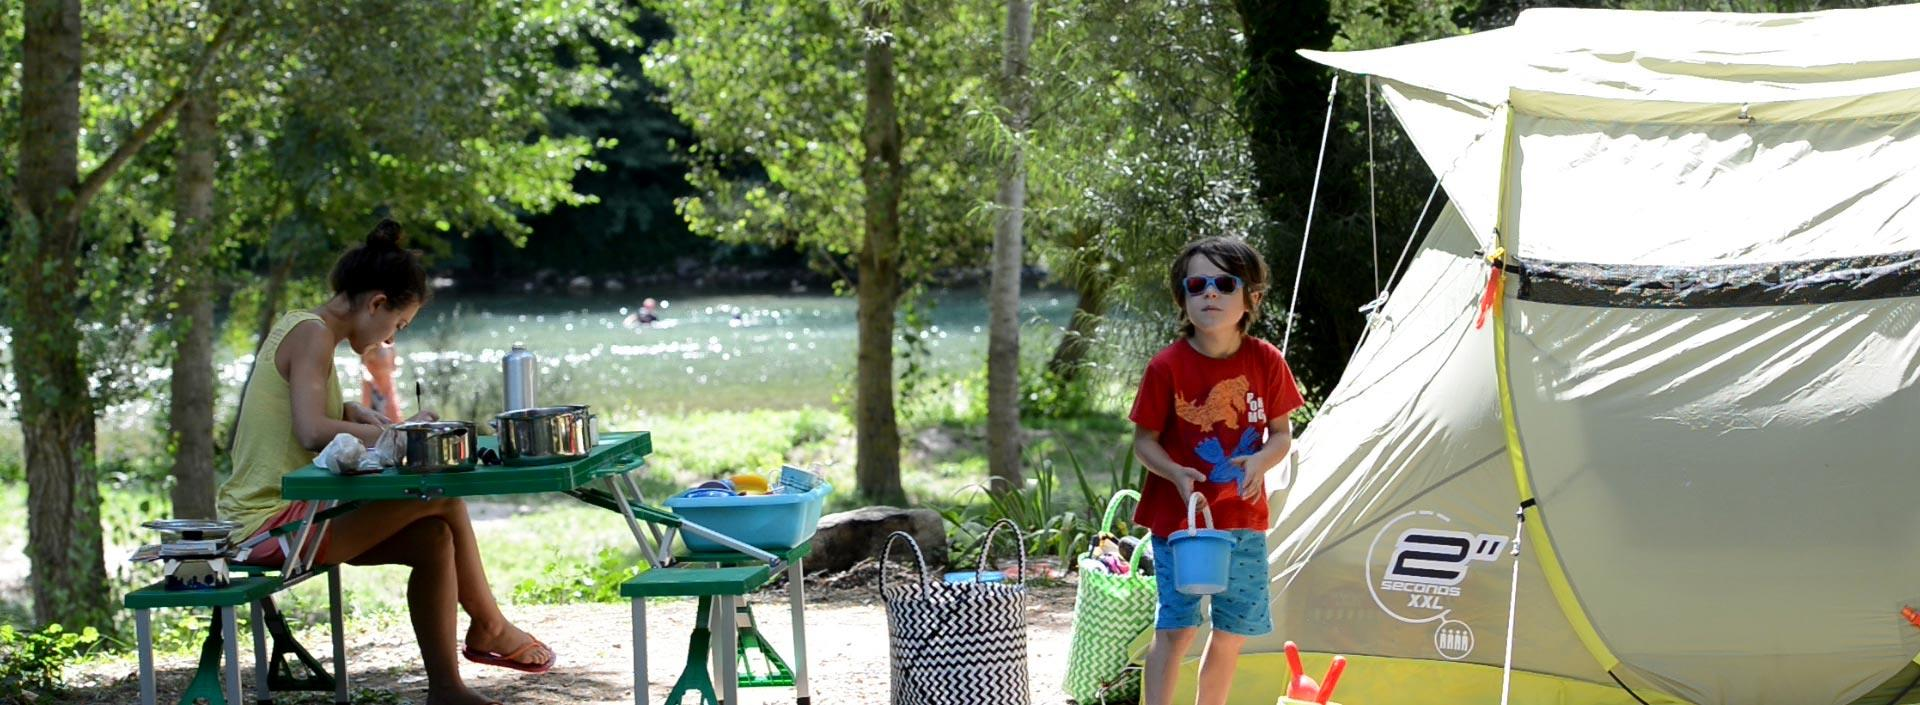 Betrieb Camping Les Cerisiers - Compeyre